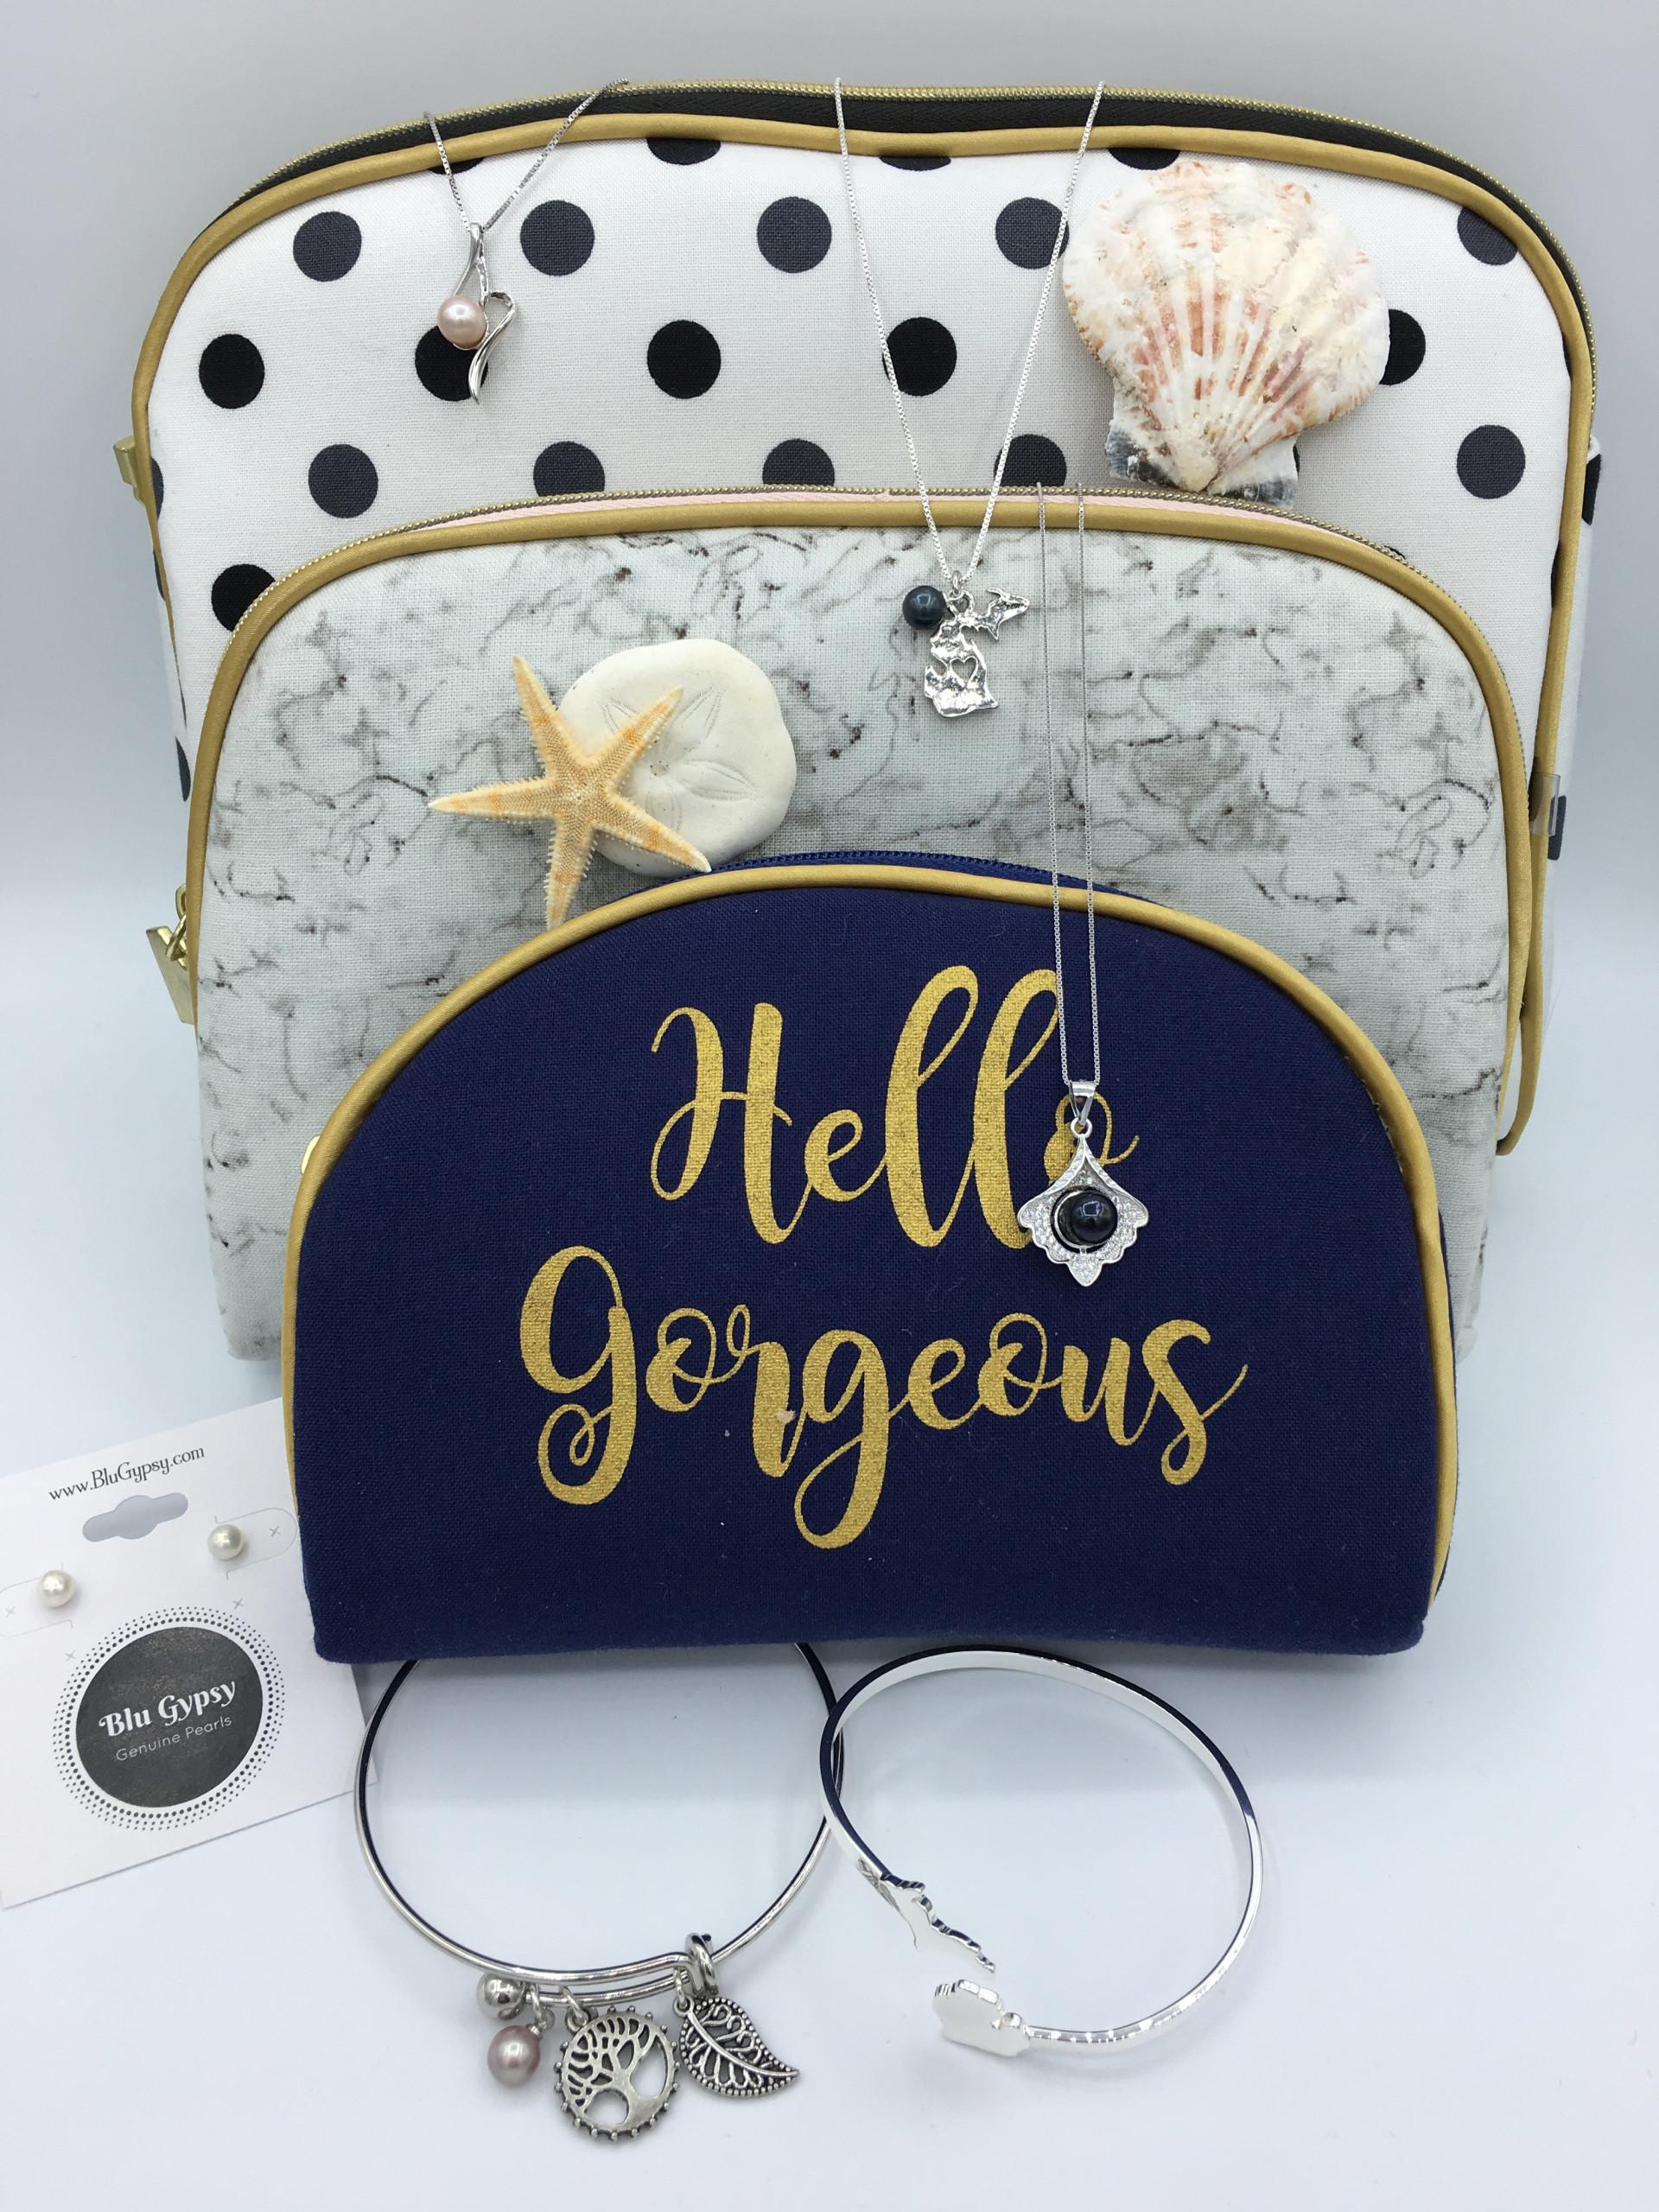 Mystery Cosmetic Bag July 11th Pearl Party 7pm Eastern Time